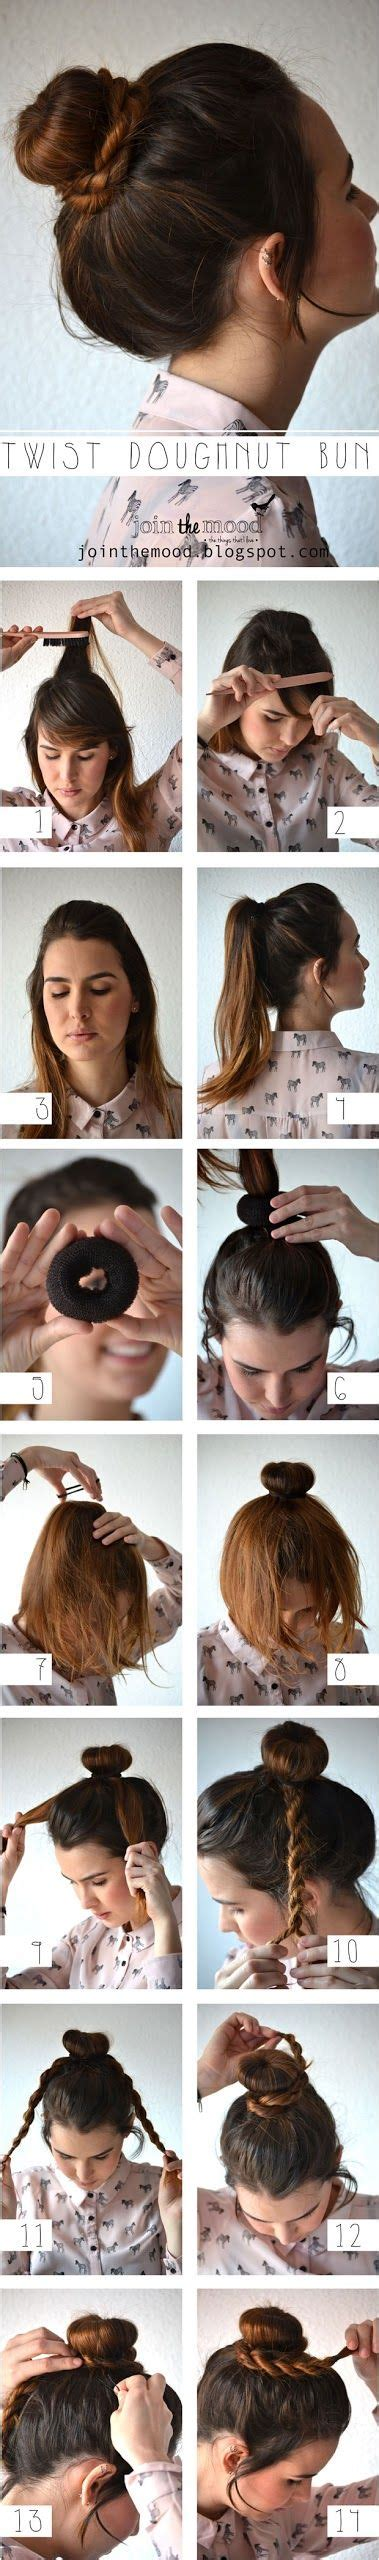 cornrows with doughnut wivon at top 327 best images about braided hairstyles on pinterest